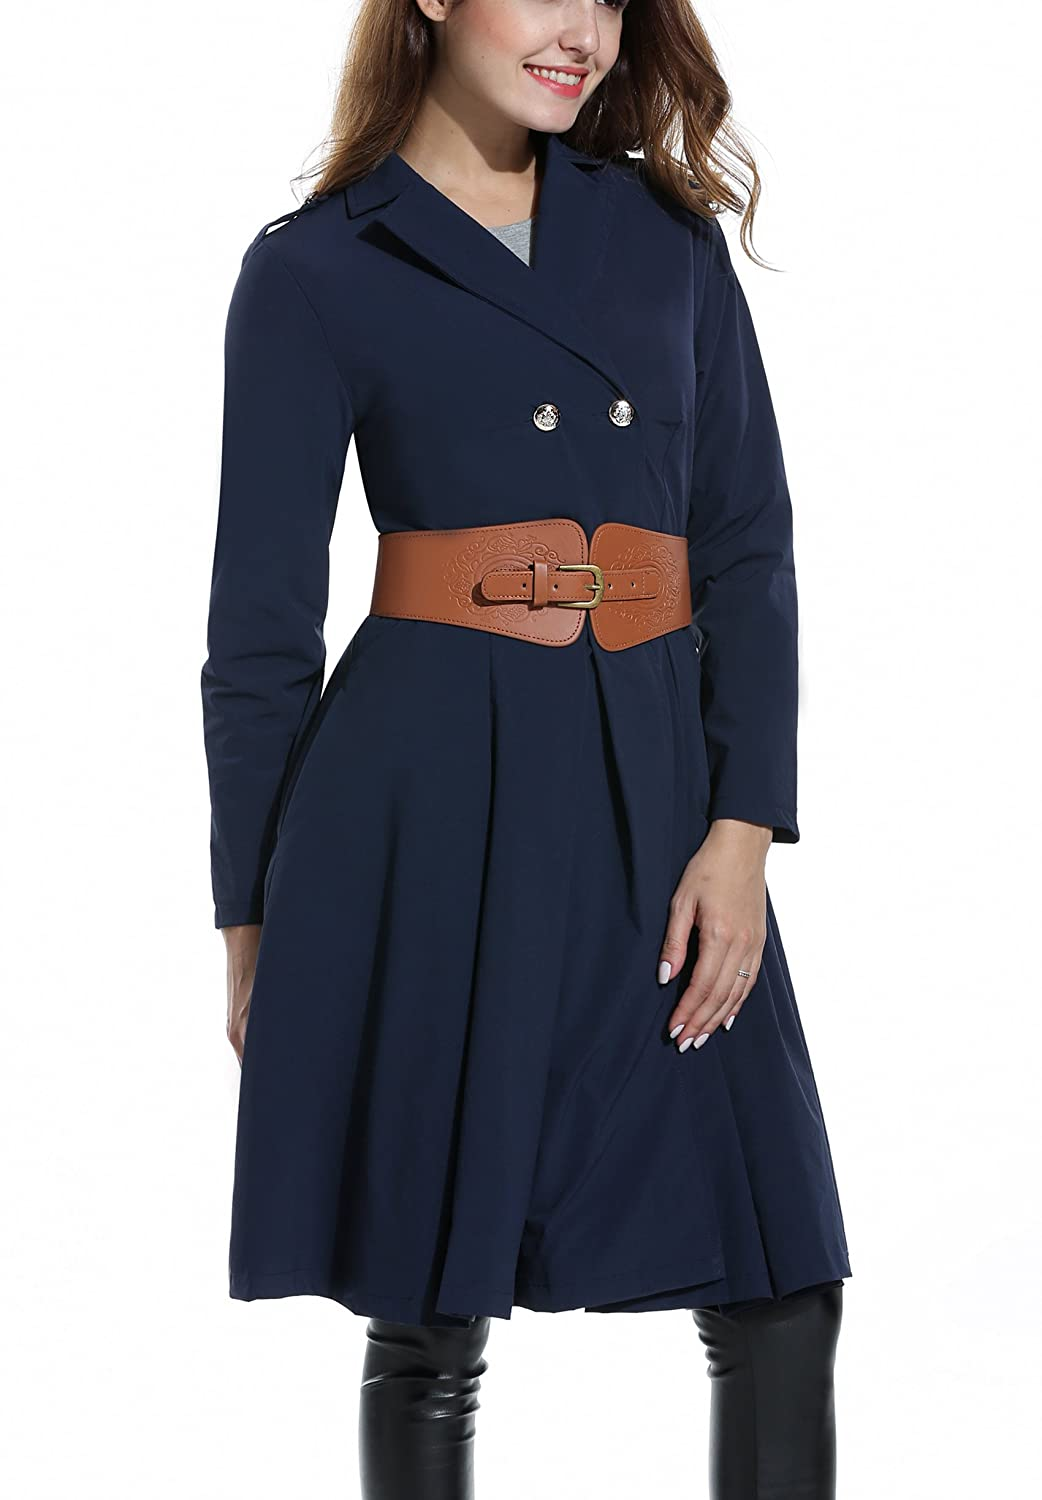 ACEVOG Women's Double Breasted Pleated Swing Trench Coat with Belt